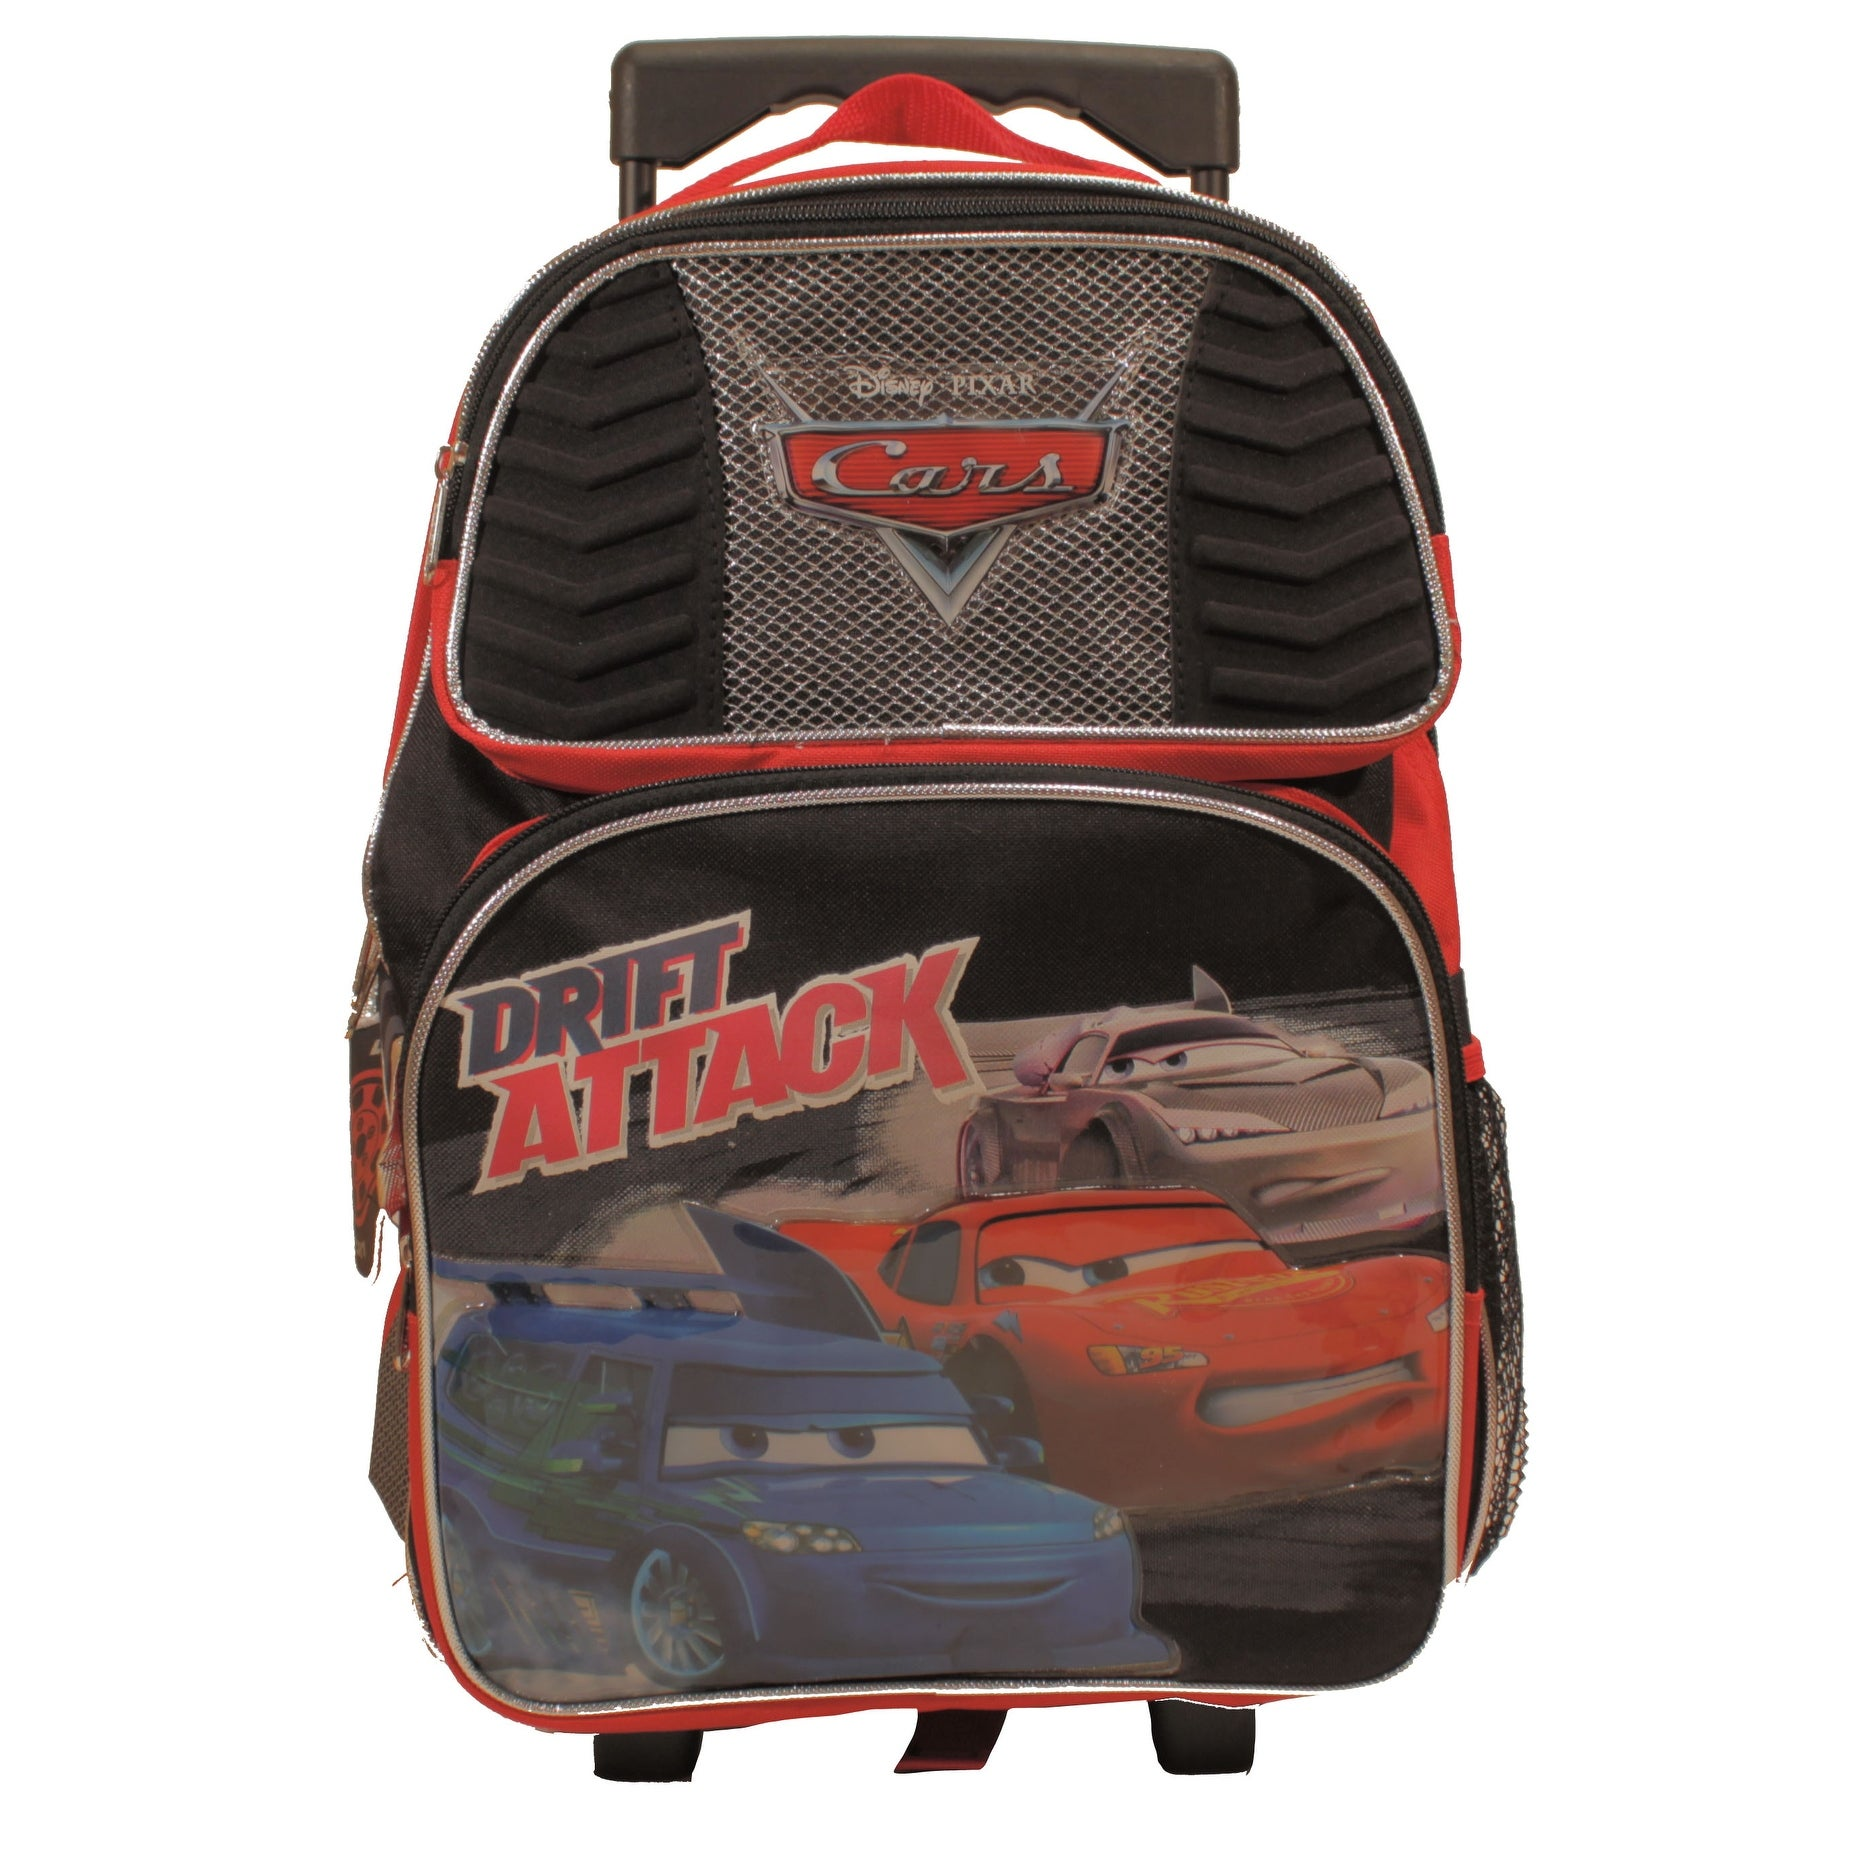 b5f6feba37 Shop Disney Cars Drift Attack Large Rolling Backpack - Free Shipping On  Orders Over  45 - Overstock - 11779766